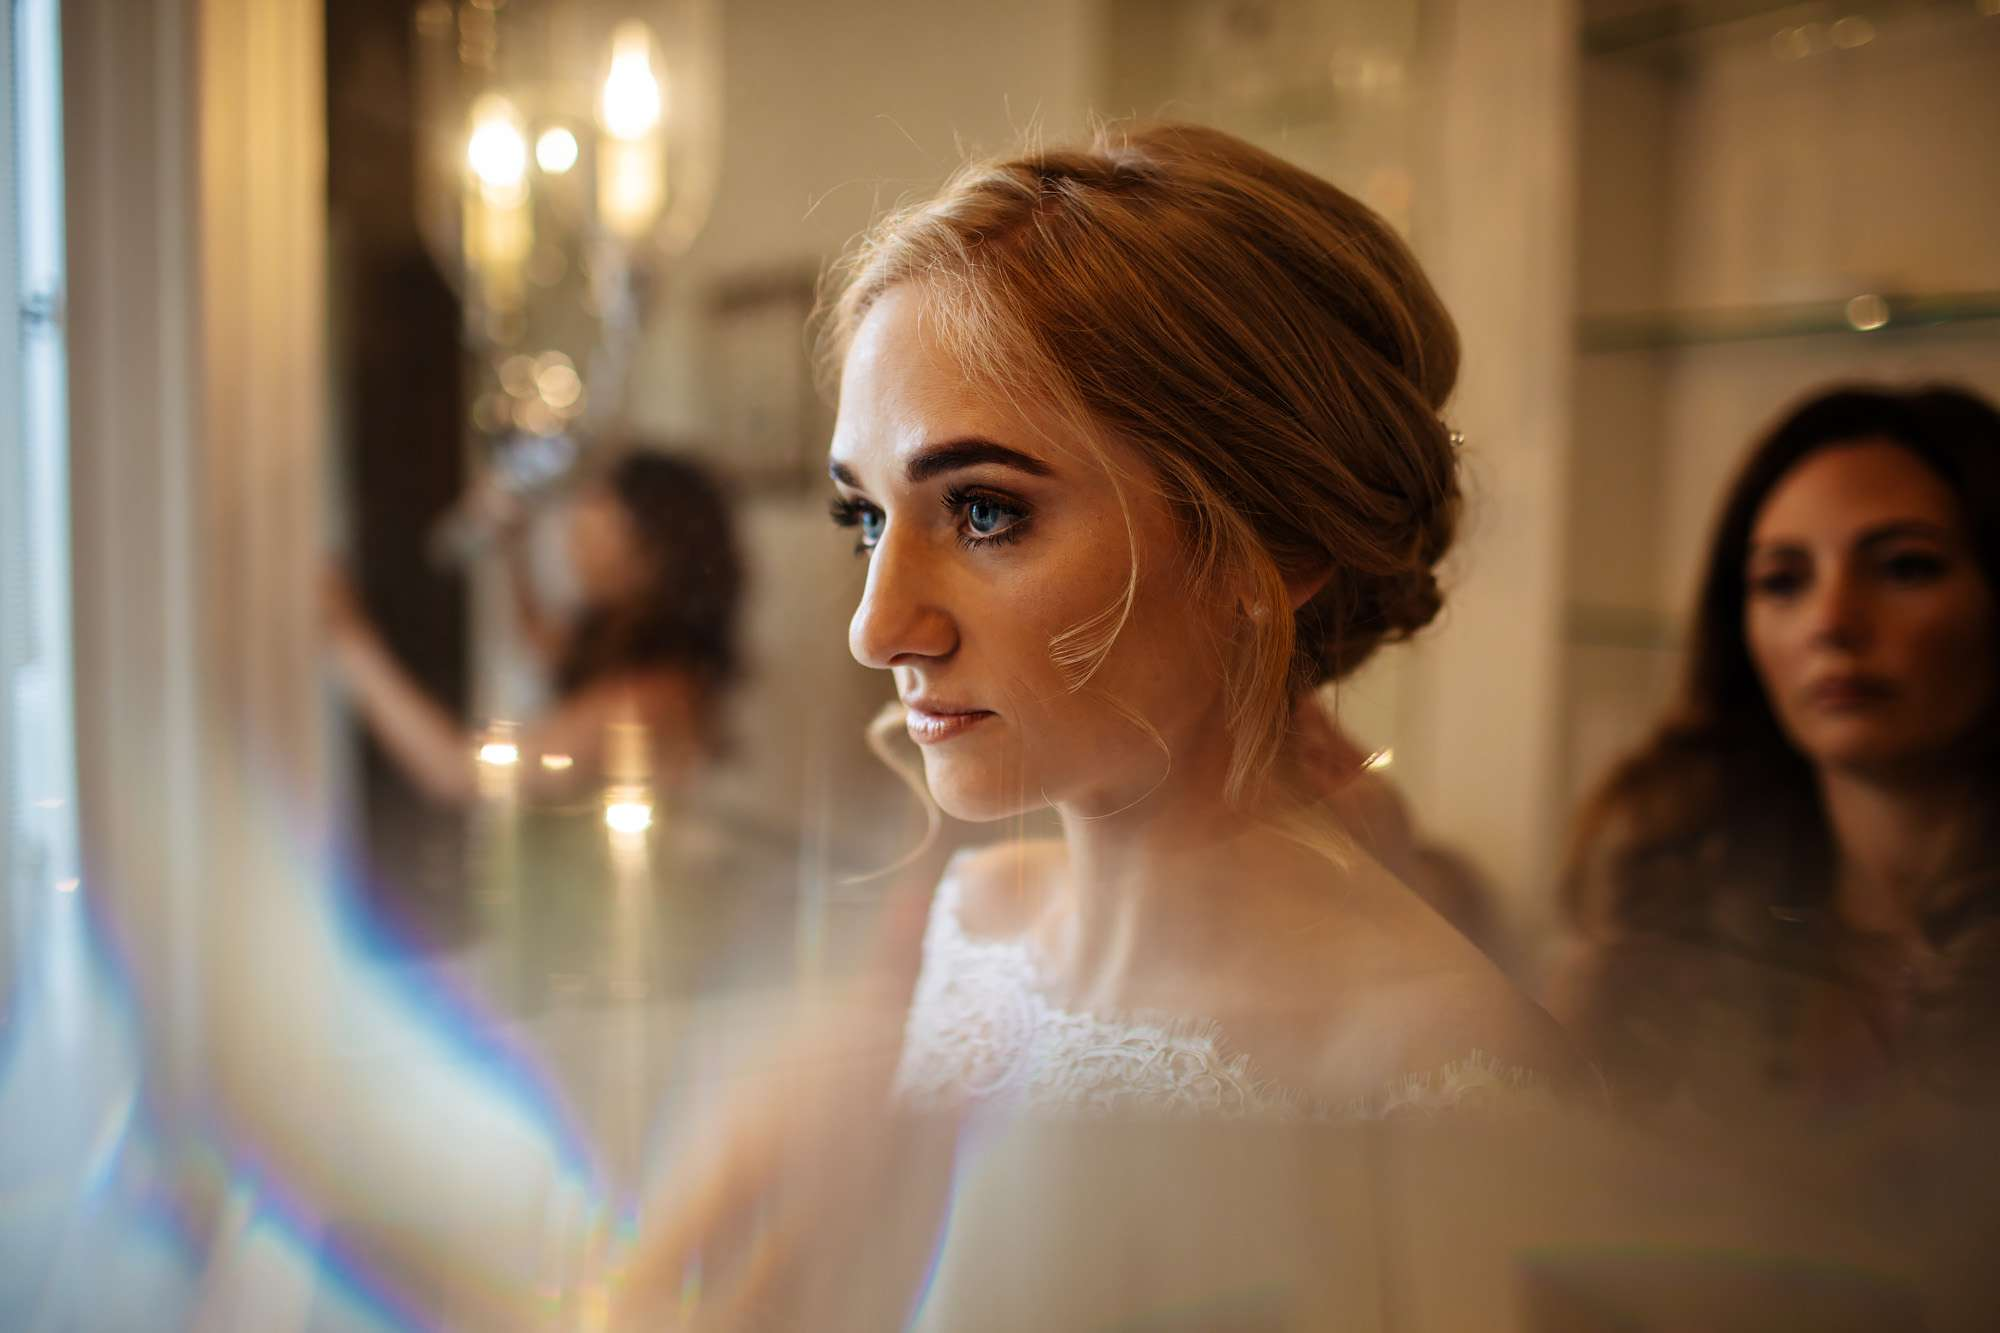 Close up portrait of the bride getting ready